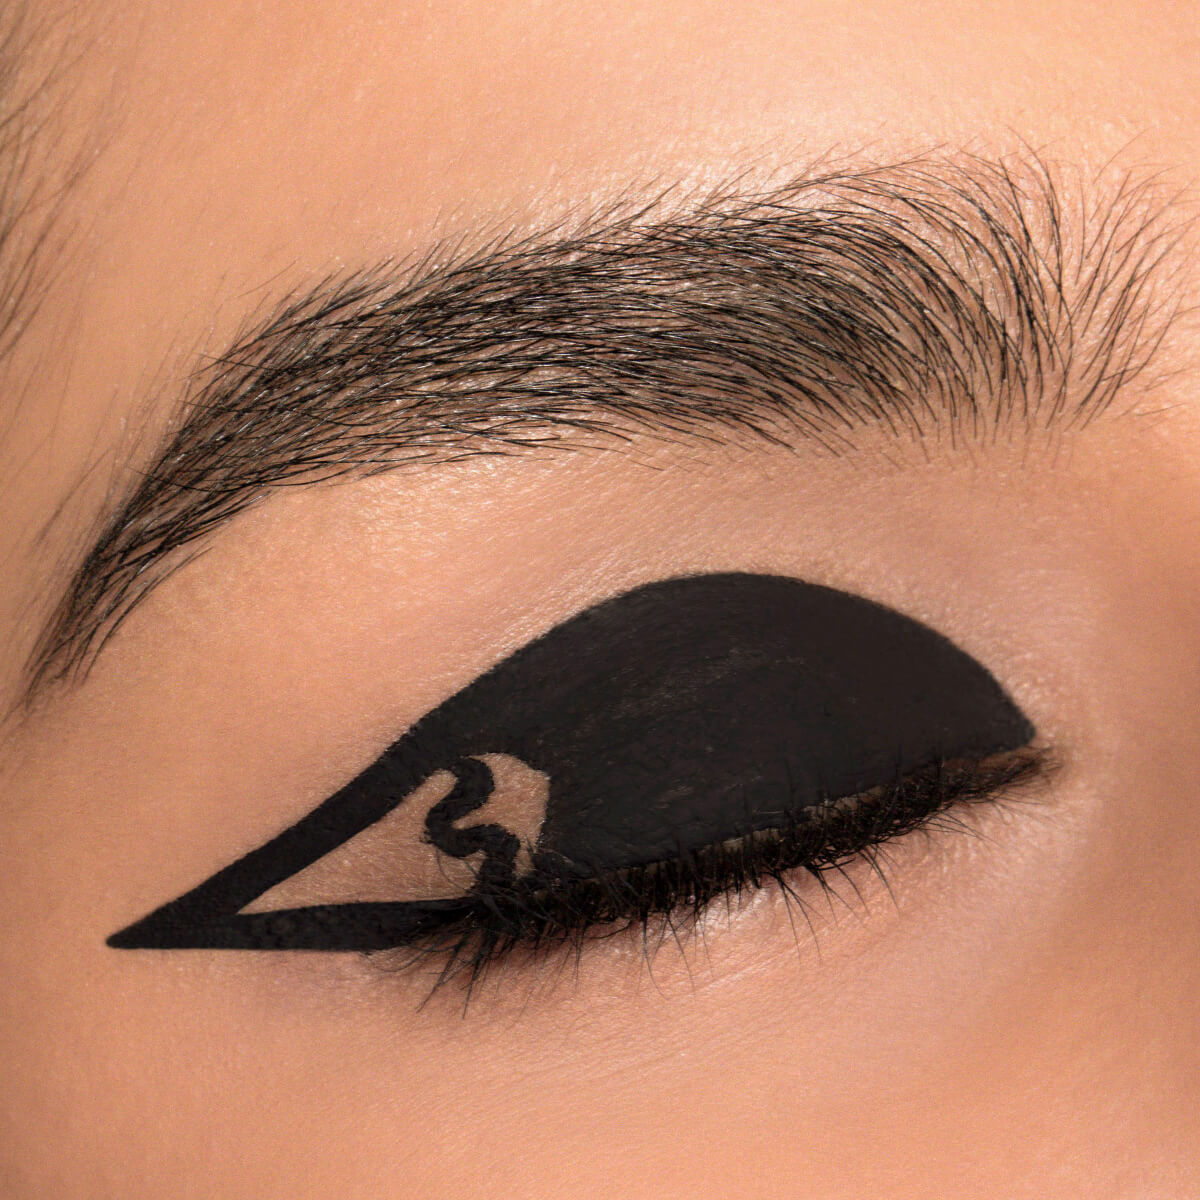 CAT EYE MAKEUP TREND